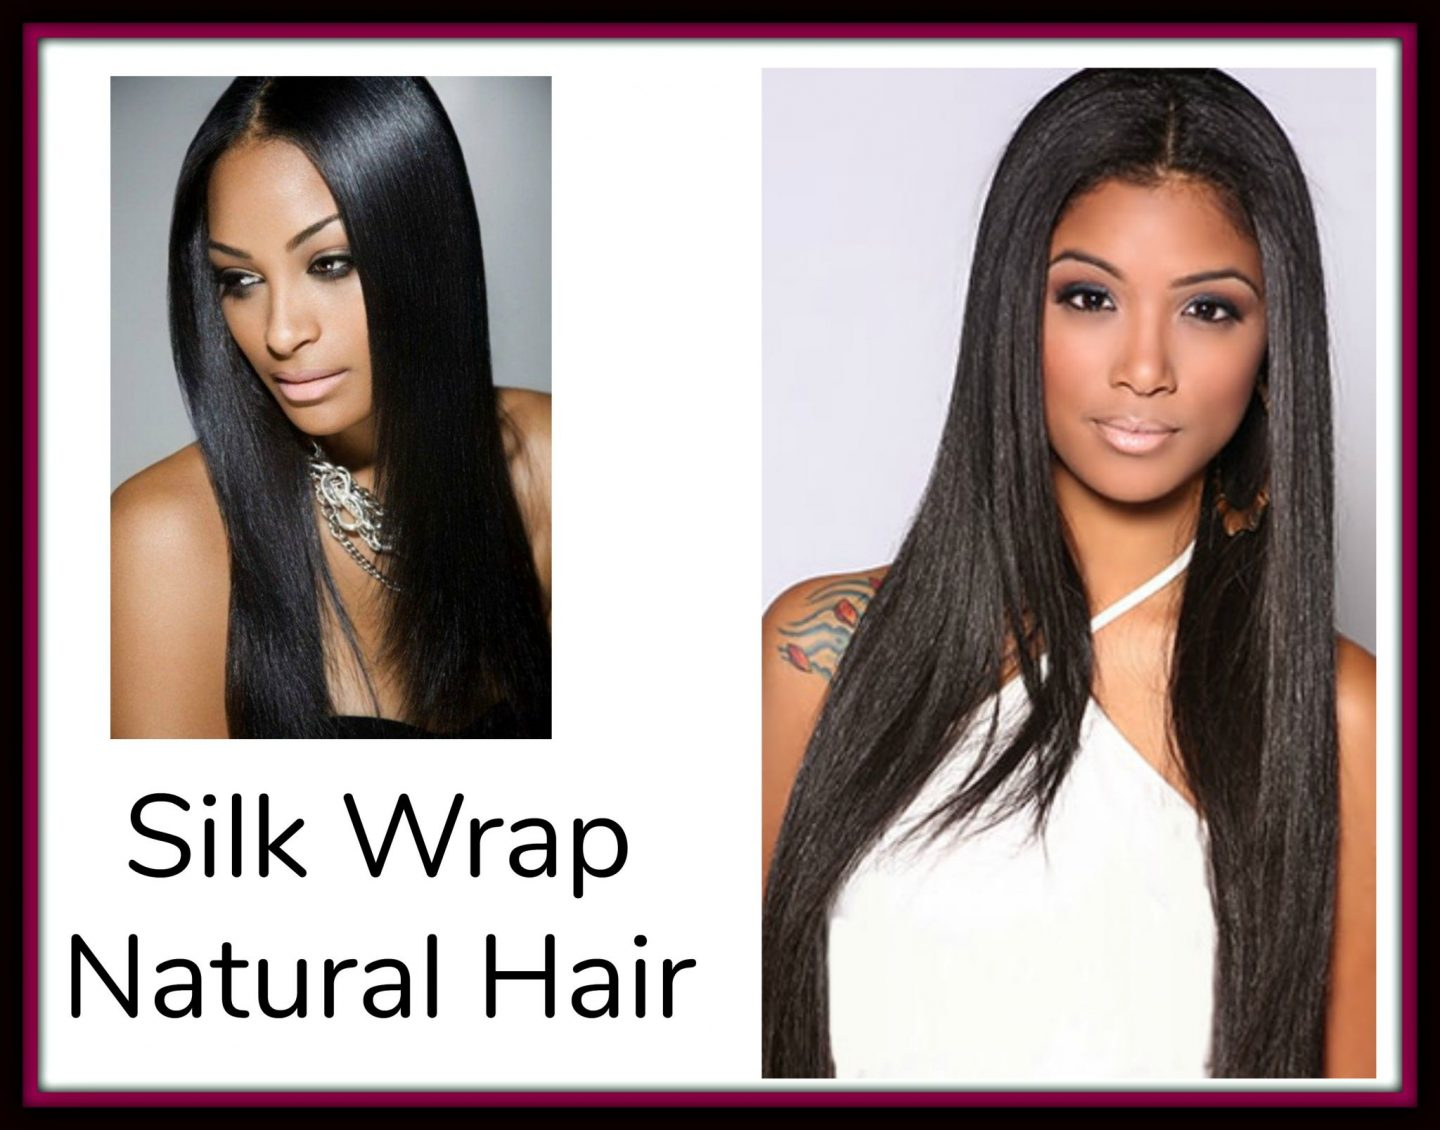 Silk Wrap Natural Hair...what the heck is that & Is It Healthy?